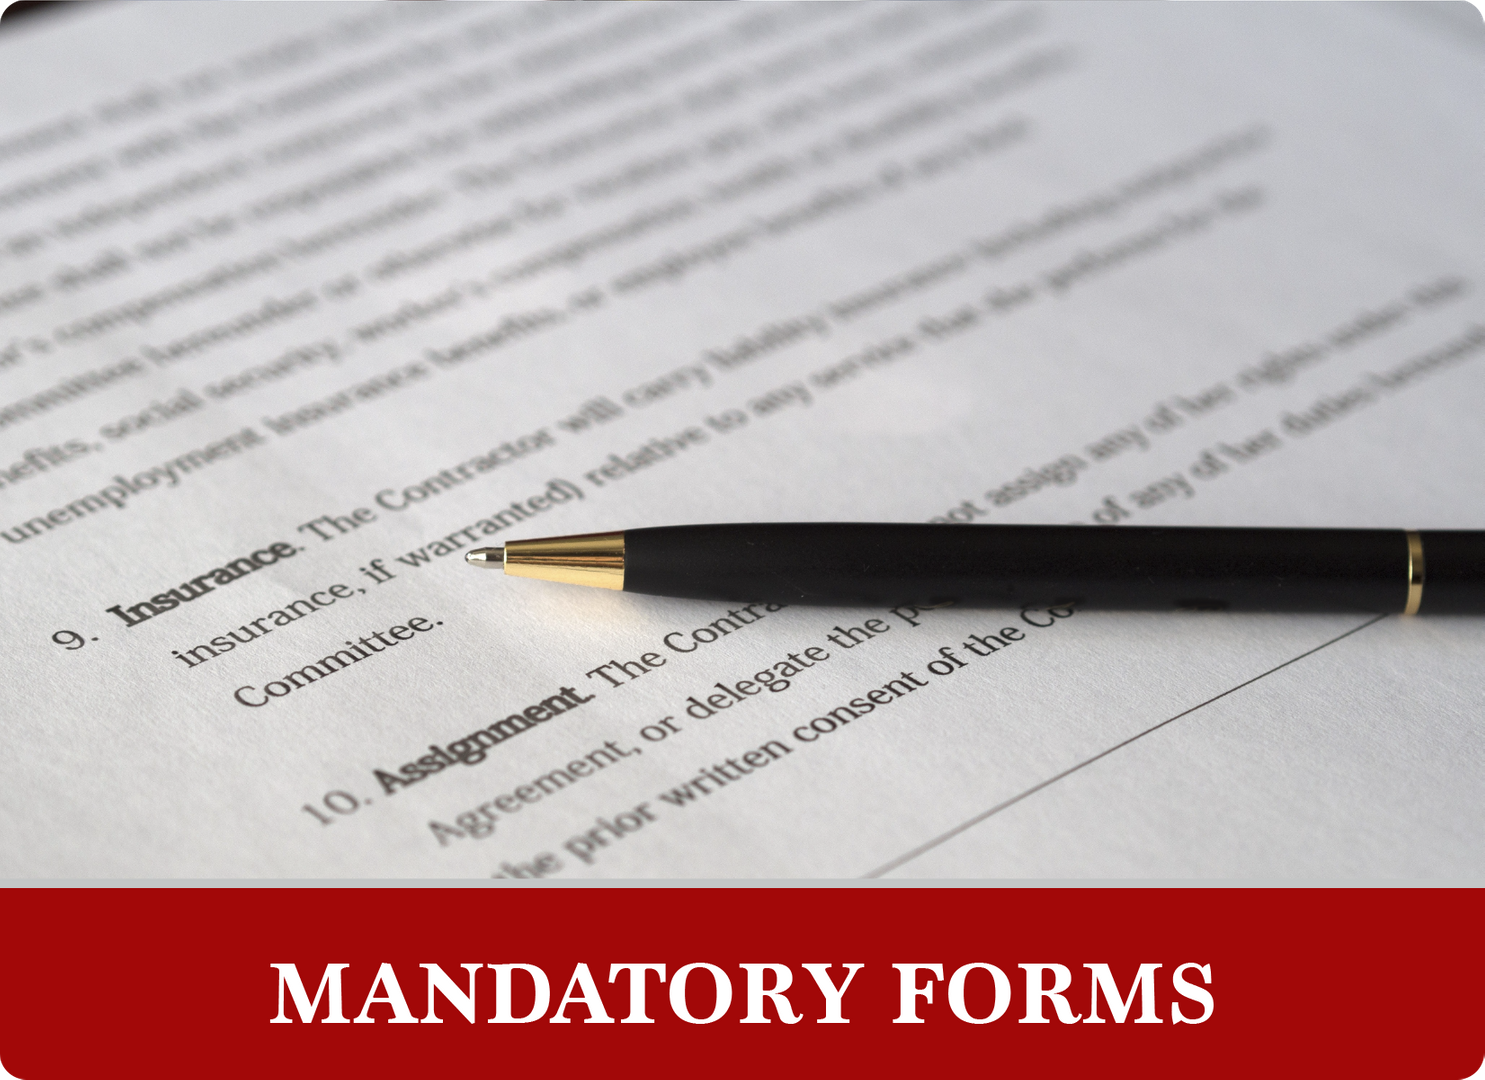 Mandatory forms: form and pen